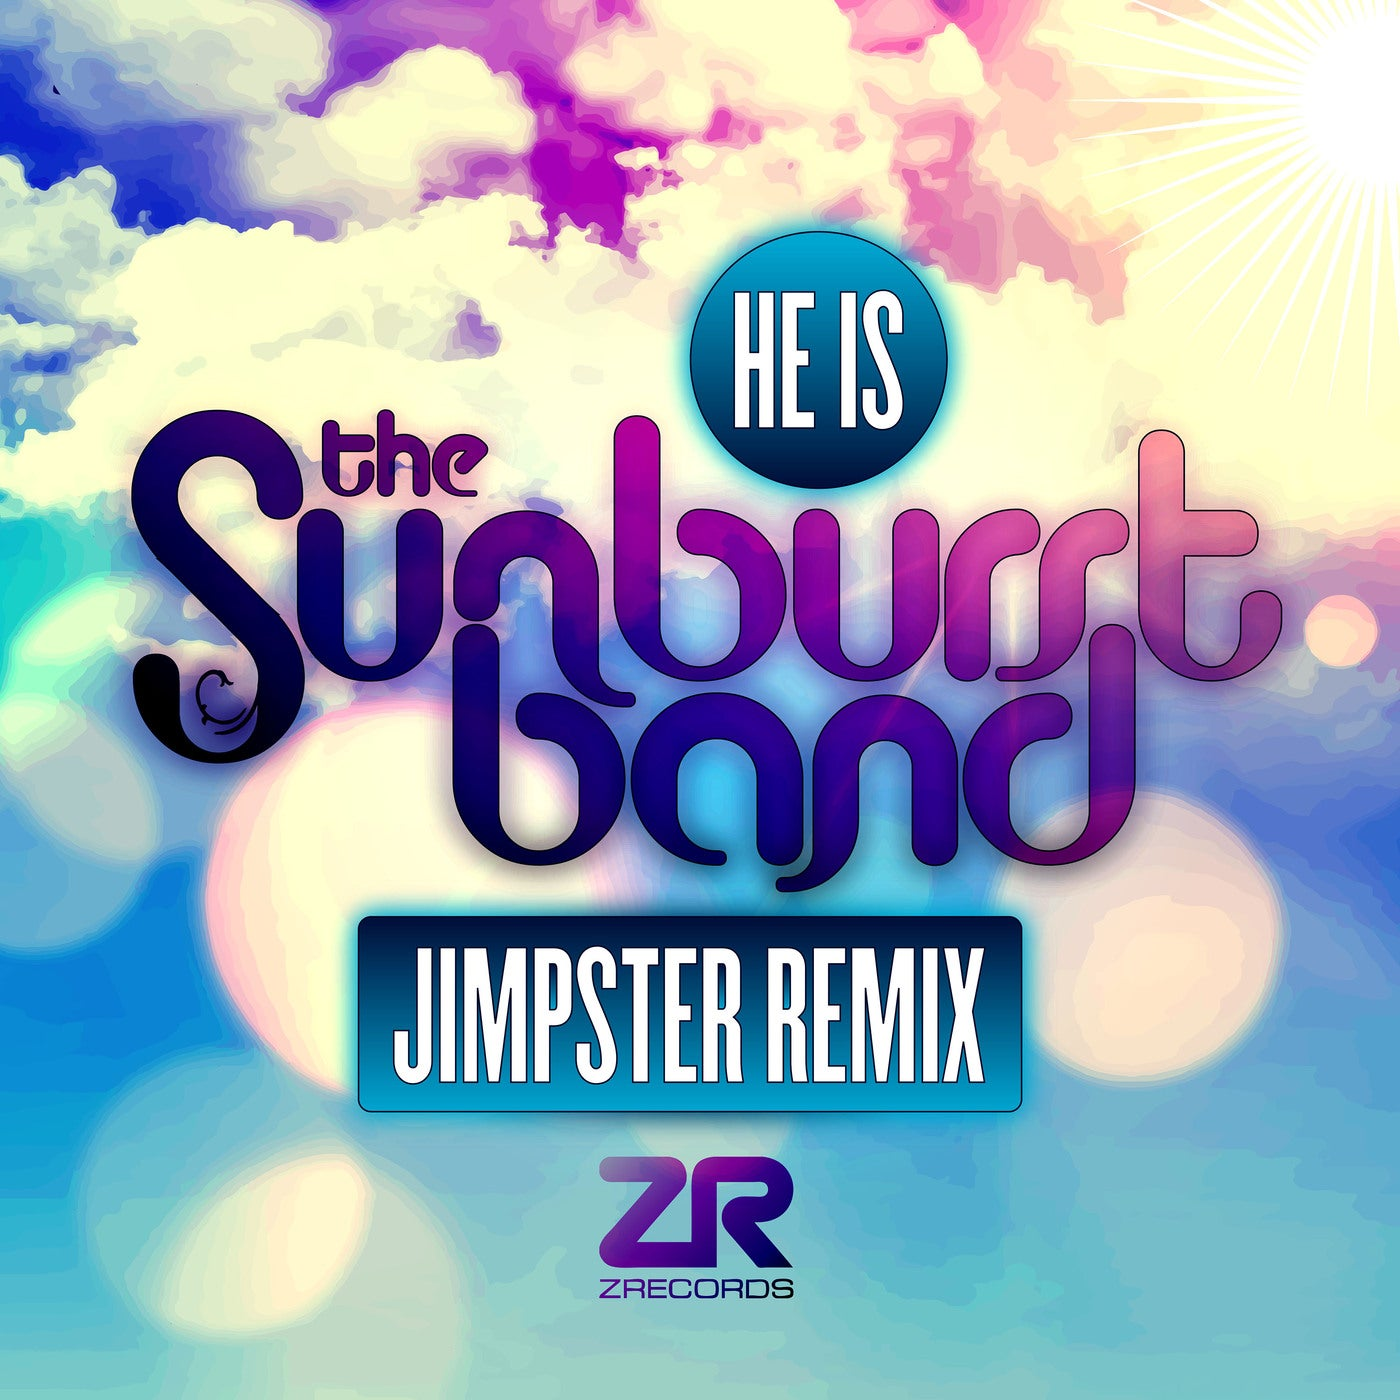 He Is (Jimpster Remix)